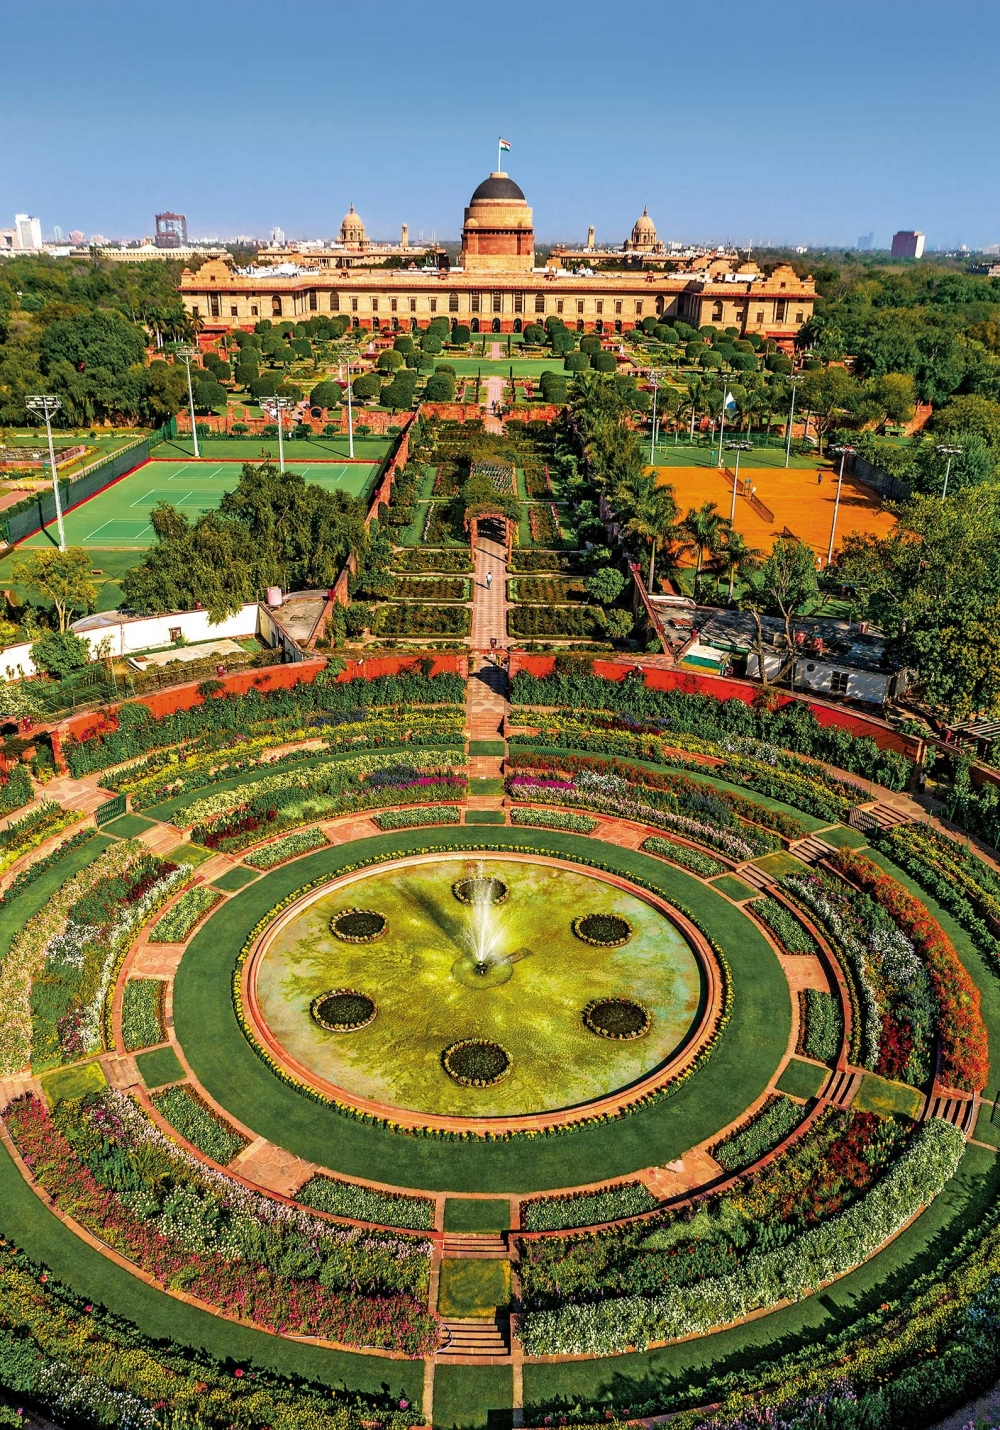 Rashtrapati Bhavan Mughal Gardens, PHOTO CREDIT - Narendra Bisht courtesy Sahapedia(dot)org